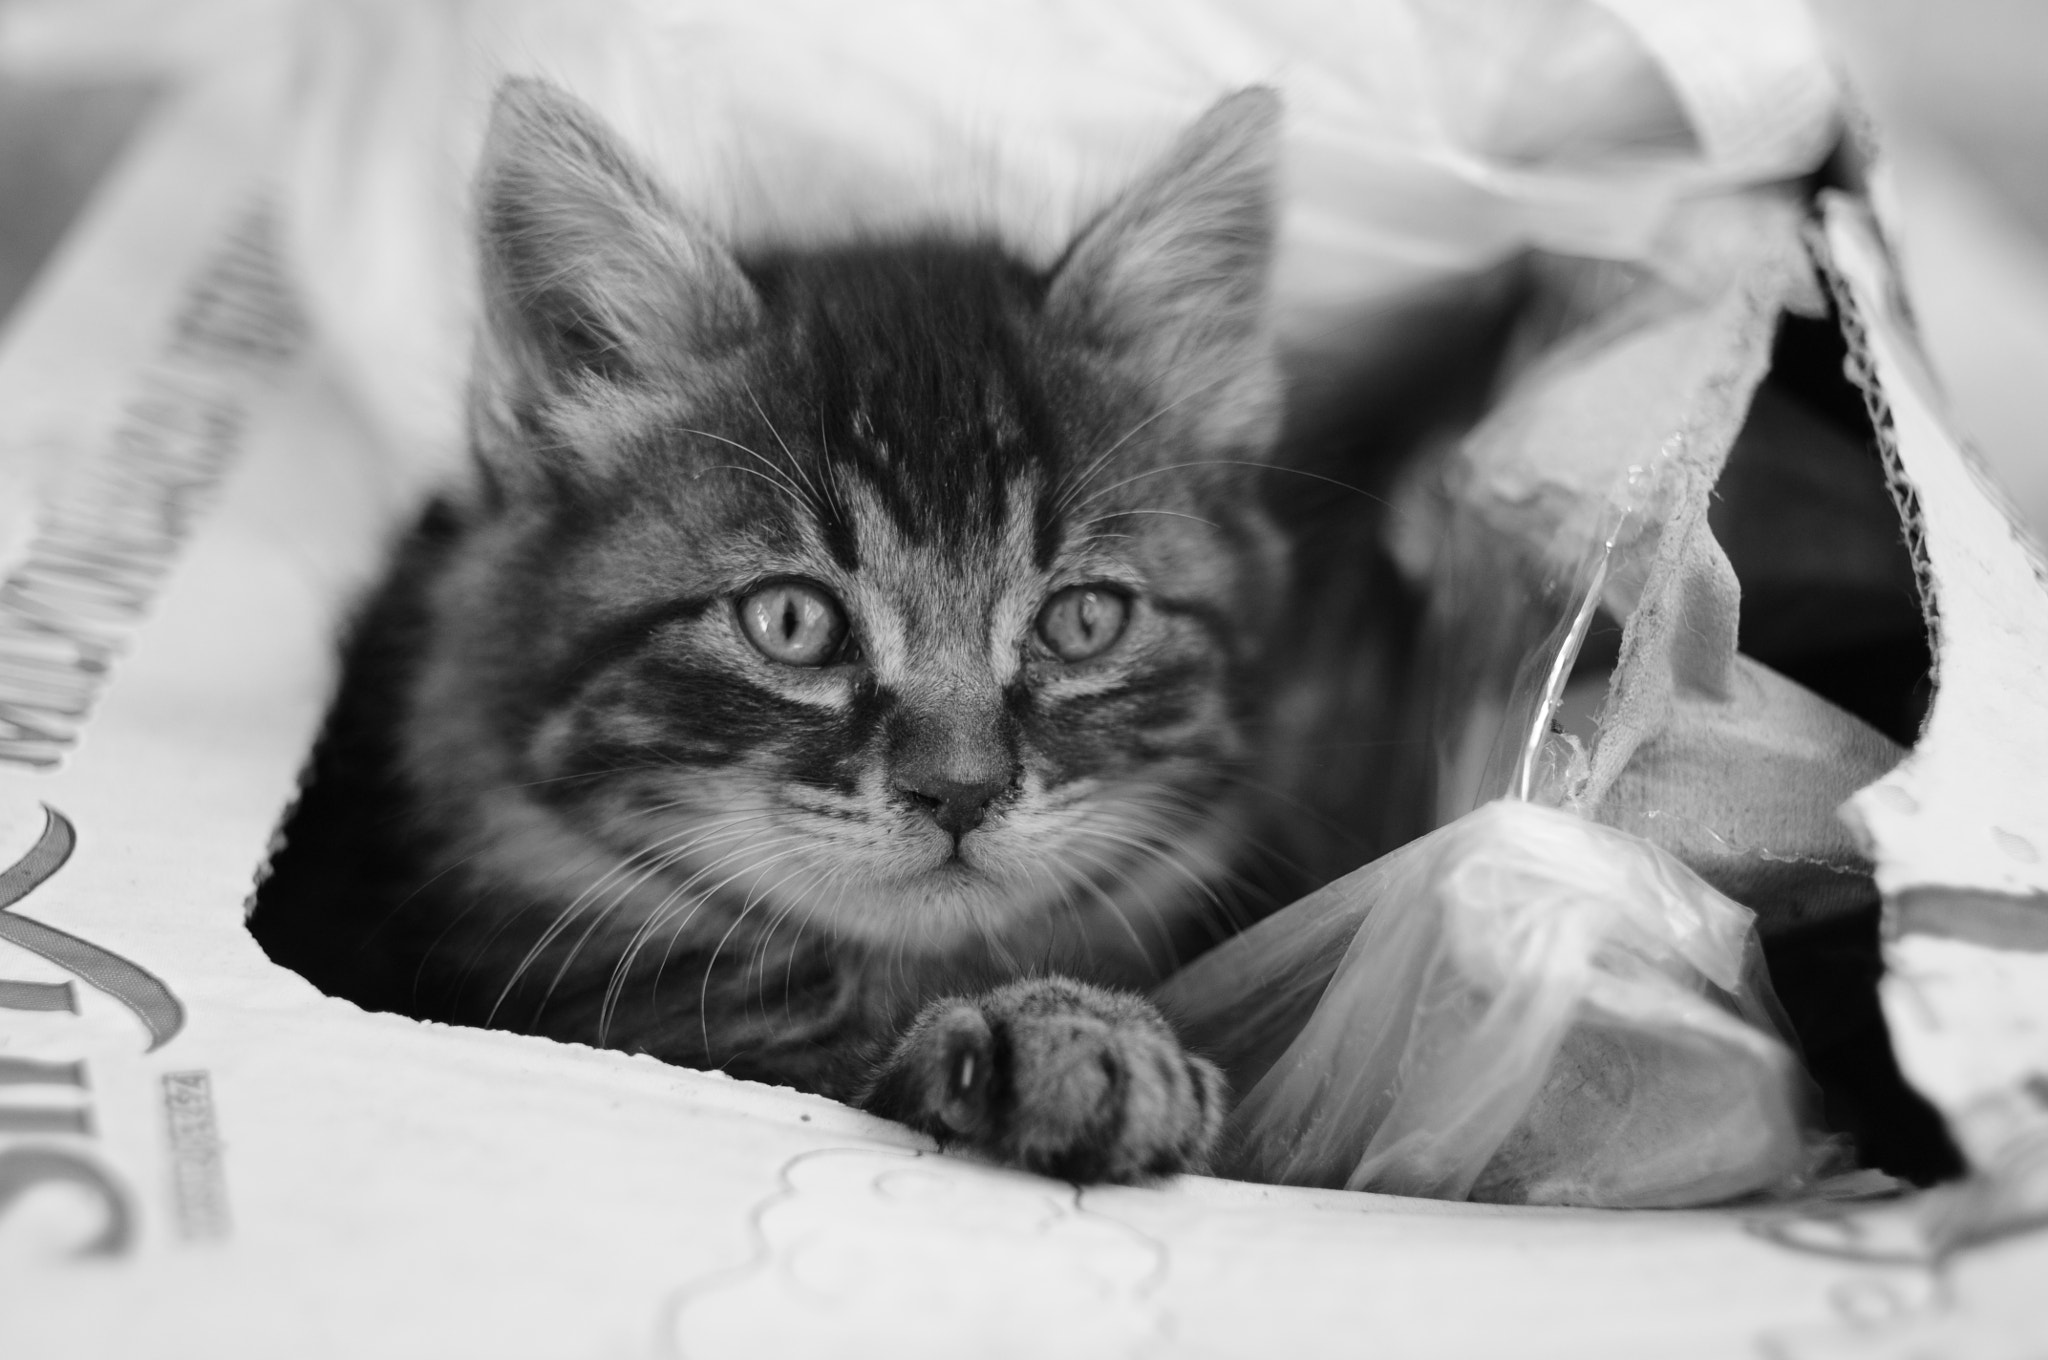 Photograph Cat in the box. by Ahmet Fatih Gülcan on 500px